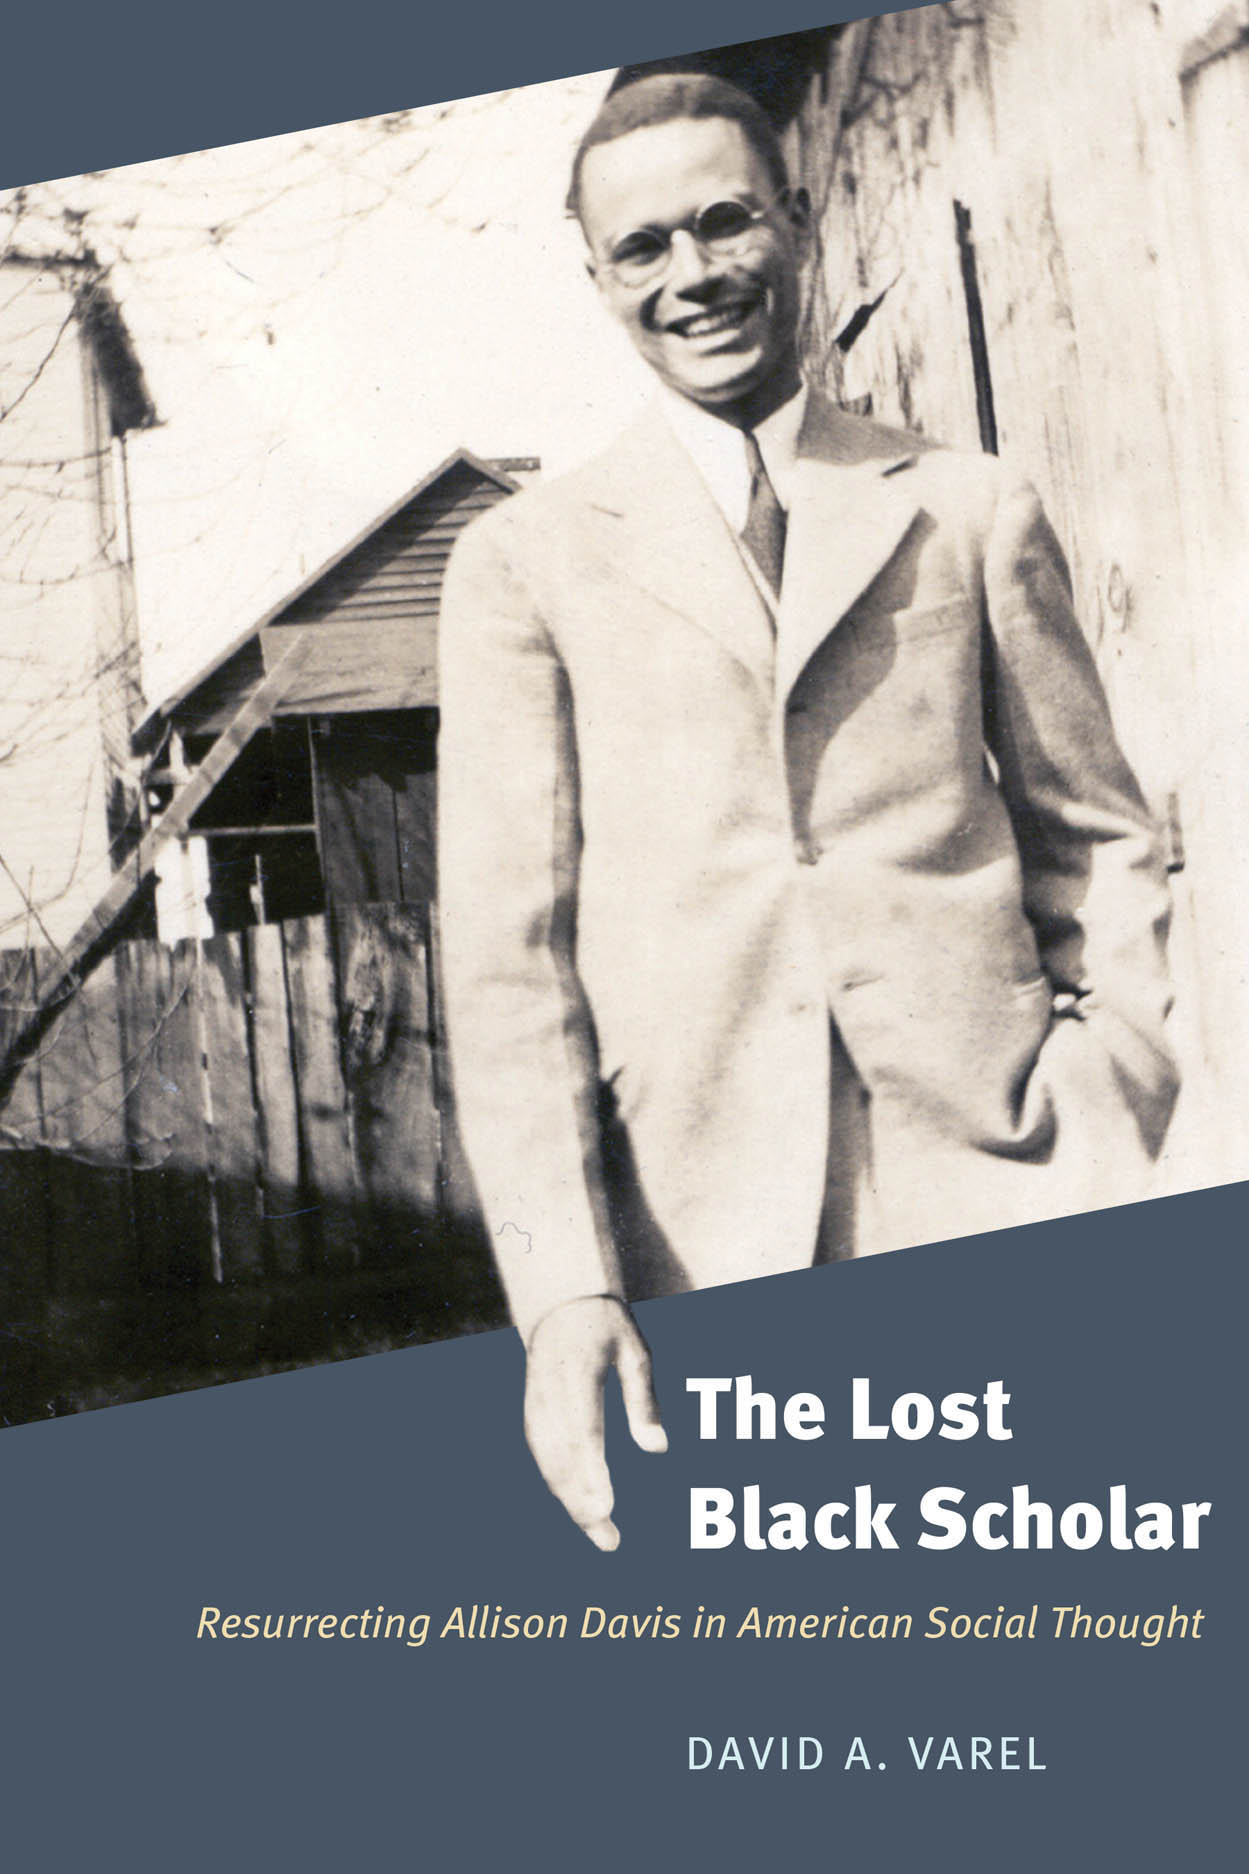 The Lost Black Scholar: Resurrecting Allison Davis in American Social Thought